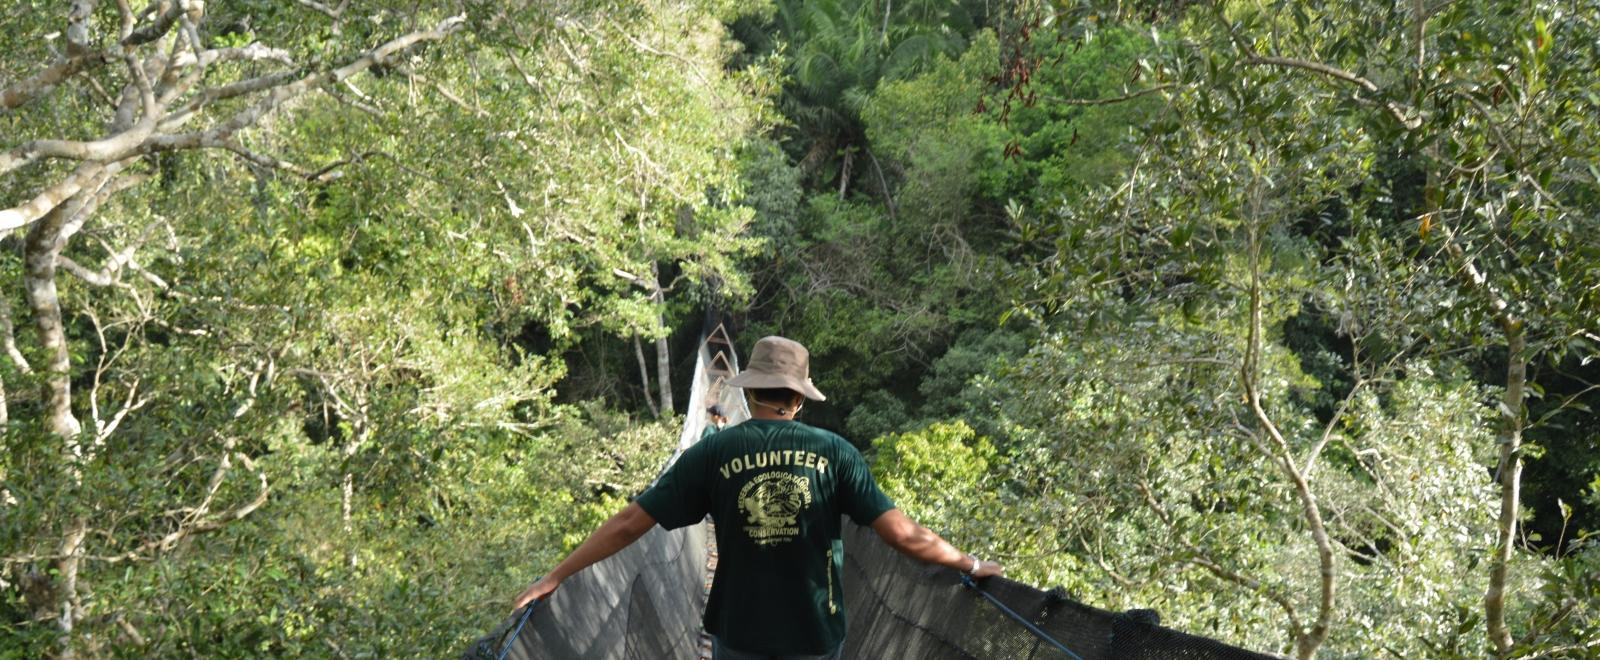 Projects Abroad volunteers experiences the Amazon from the highest treetop canopy in South America.